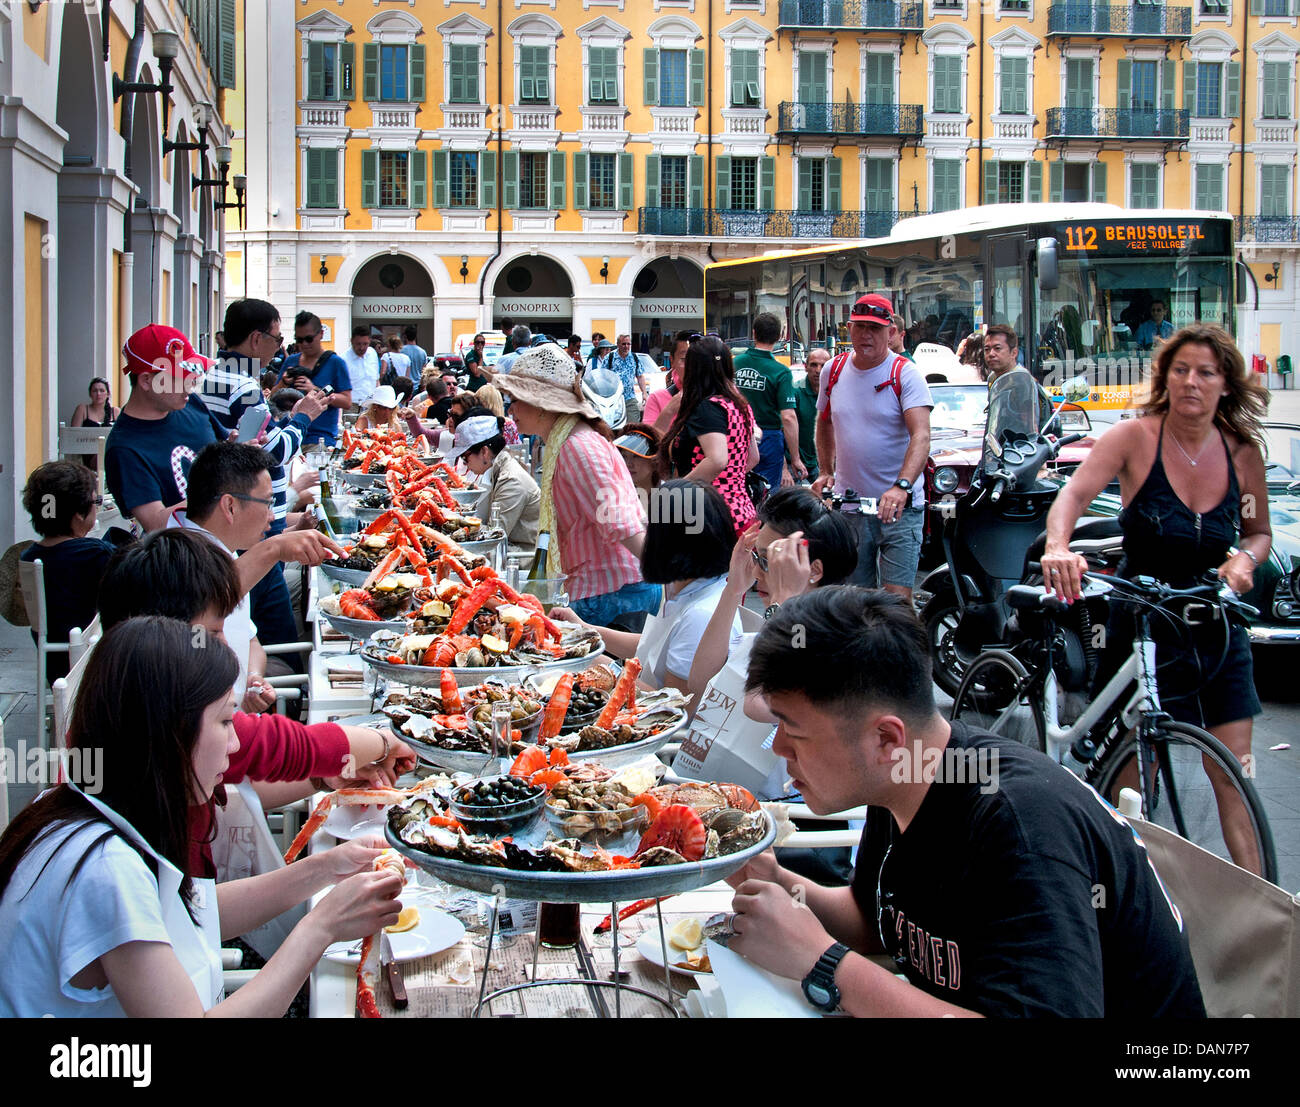 lunch cafe de turin nice france chinese people fruits de mer french stock photo royalty free. Black Bedroom Furniture Sets. Home Design Ideas